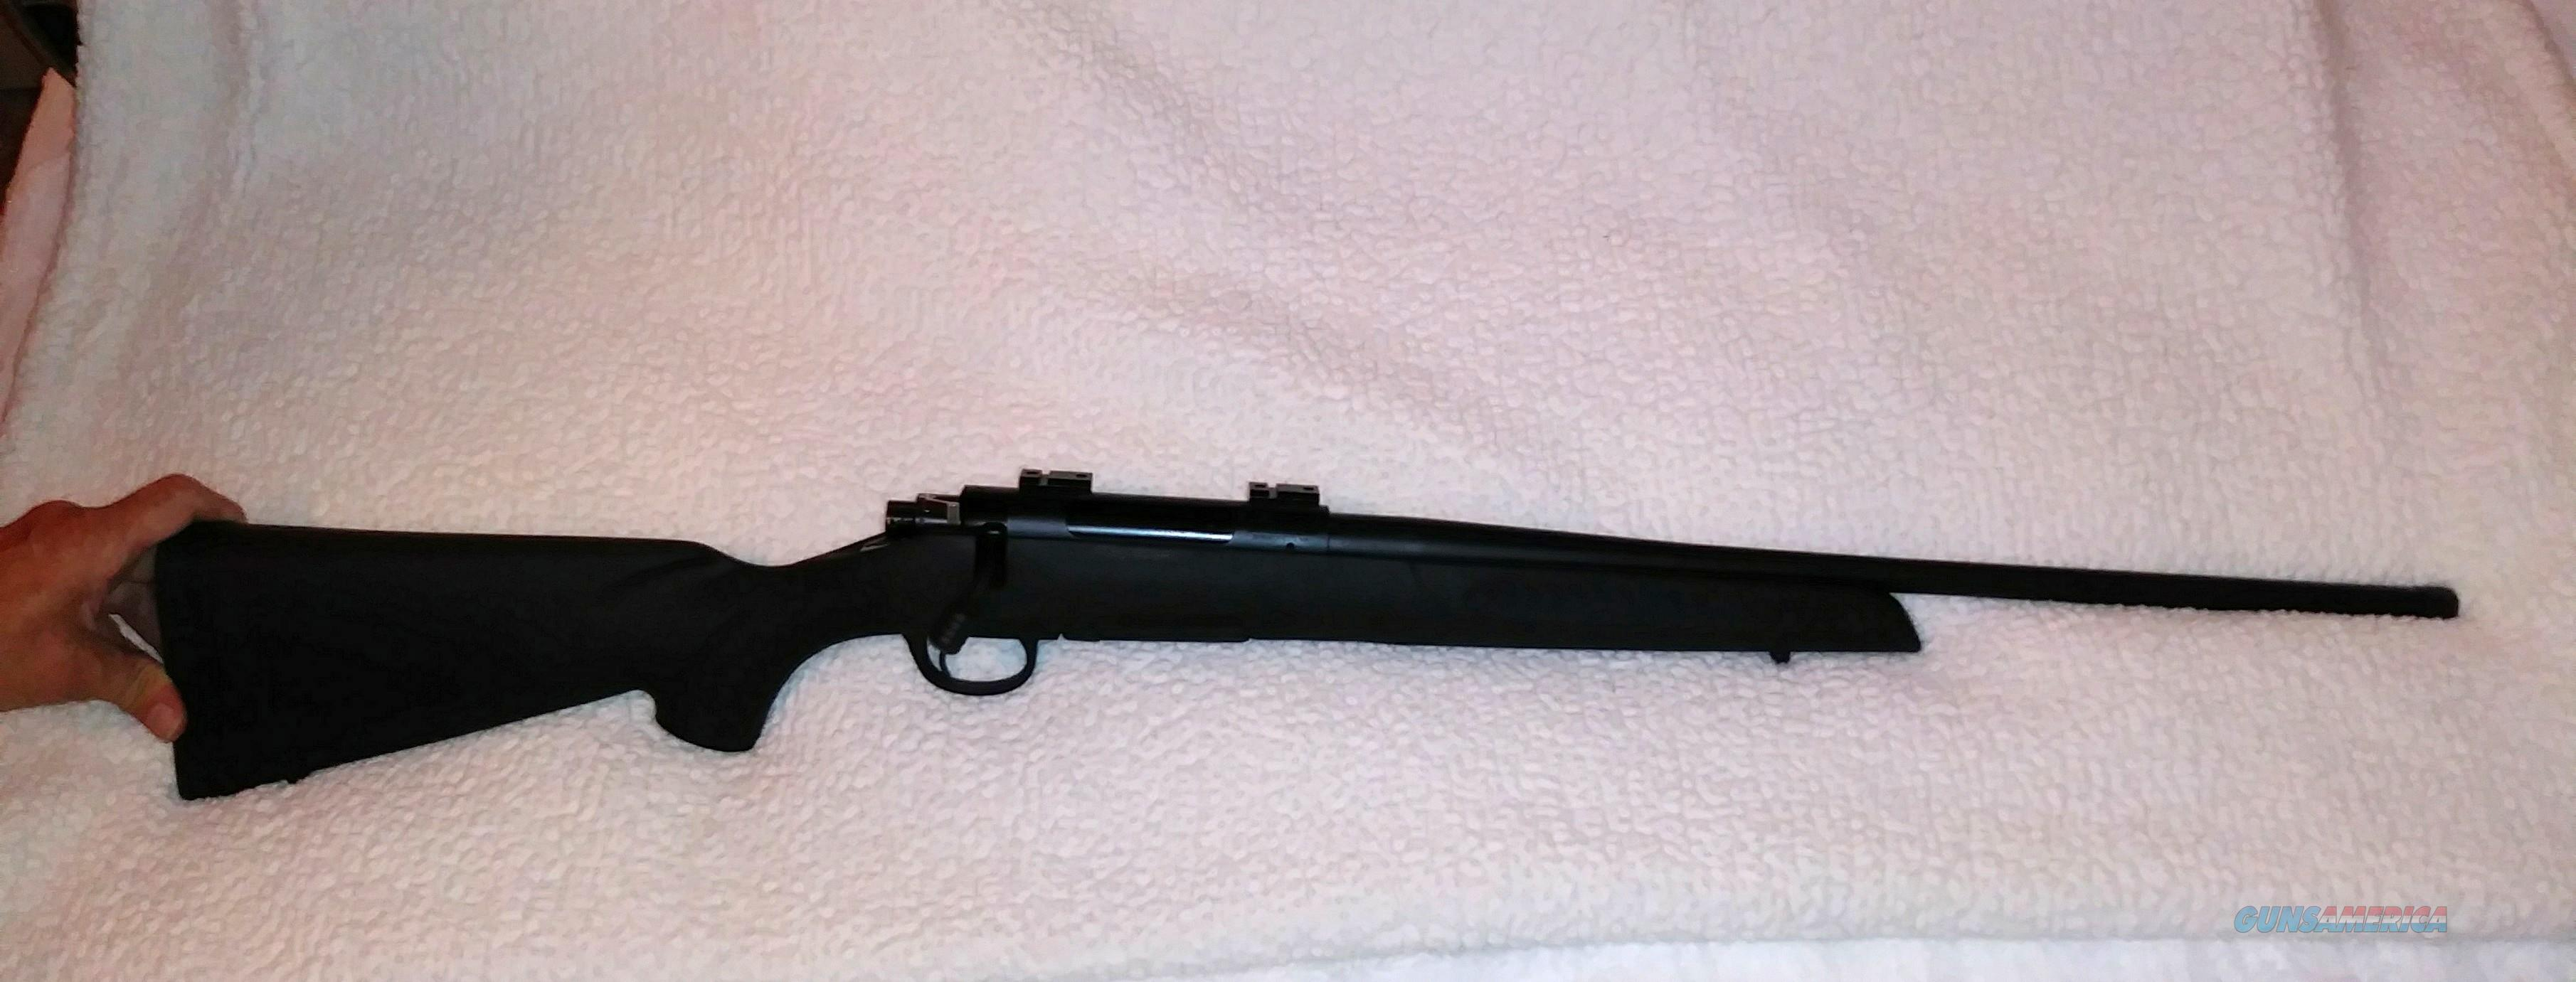 Thompson Center Compass Rifle 223/5.56  Guns > Rifles > Thompson Center Rifles > Compass